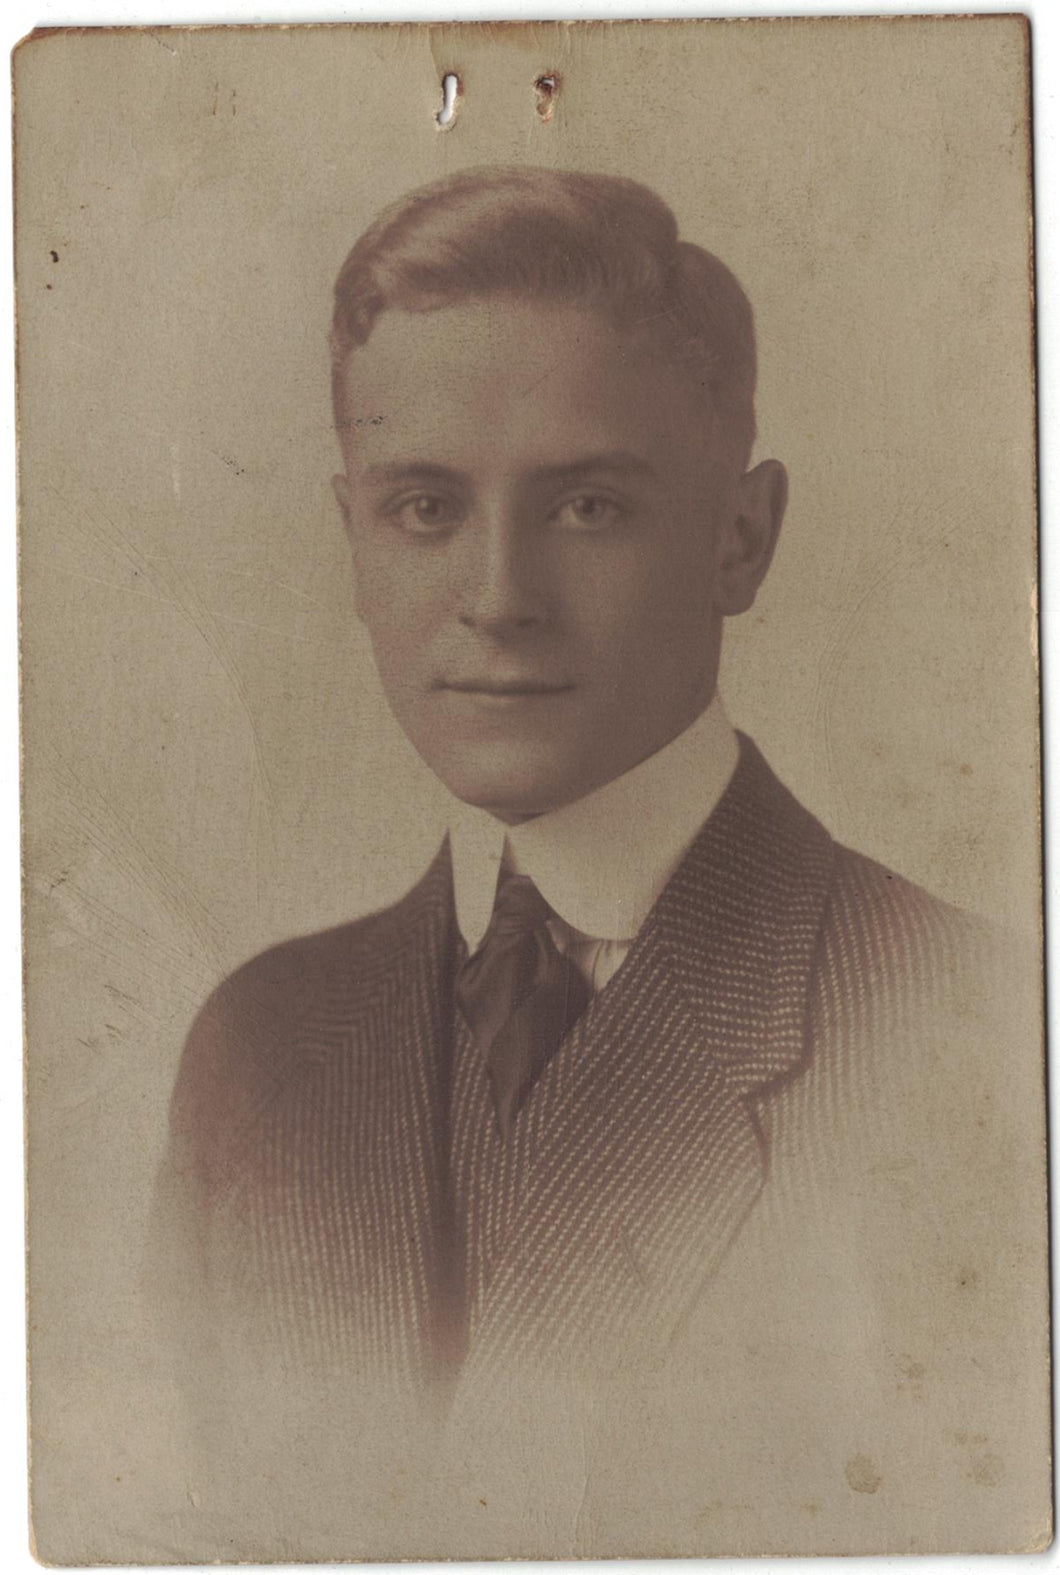 Vintage photograph handsome man in striped suit.